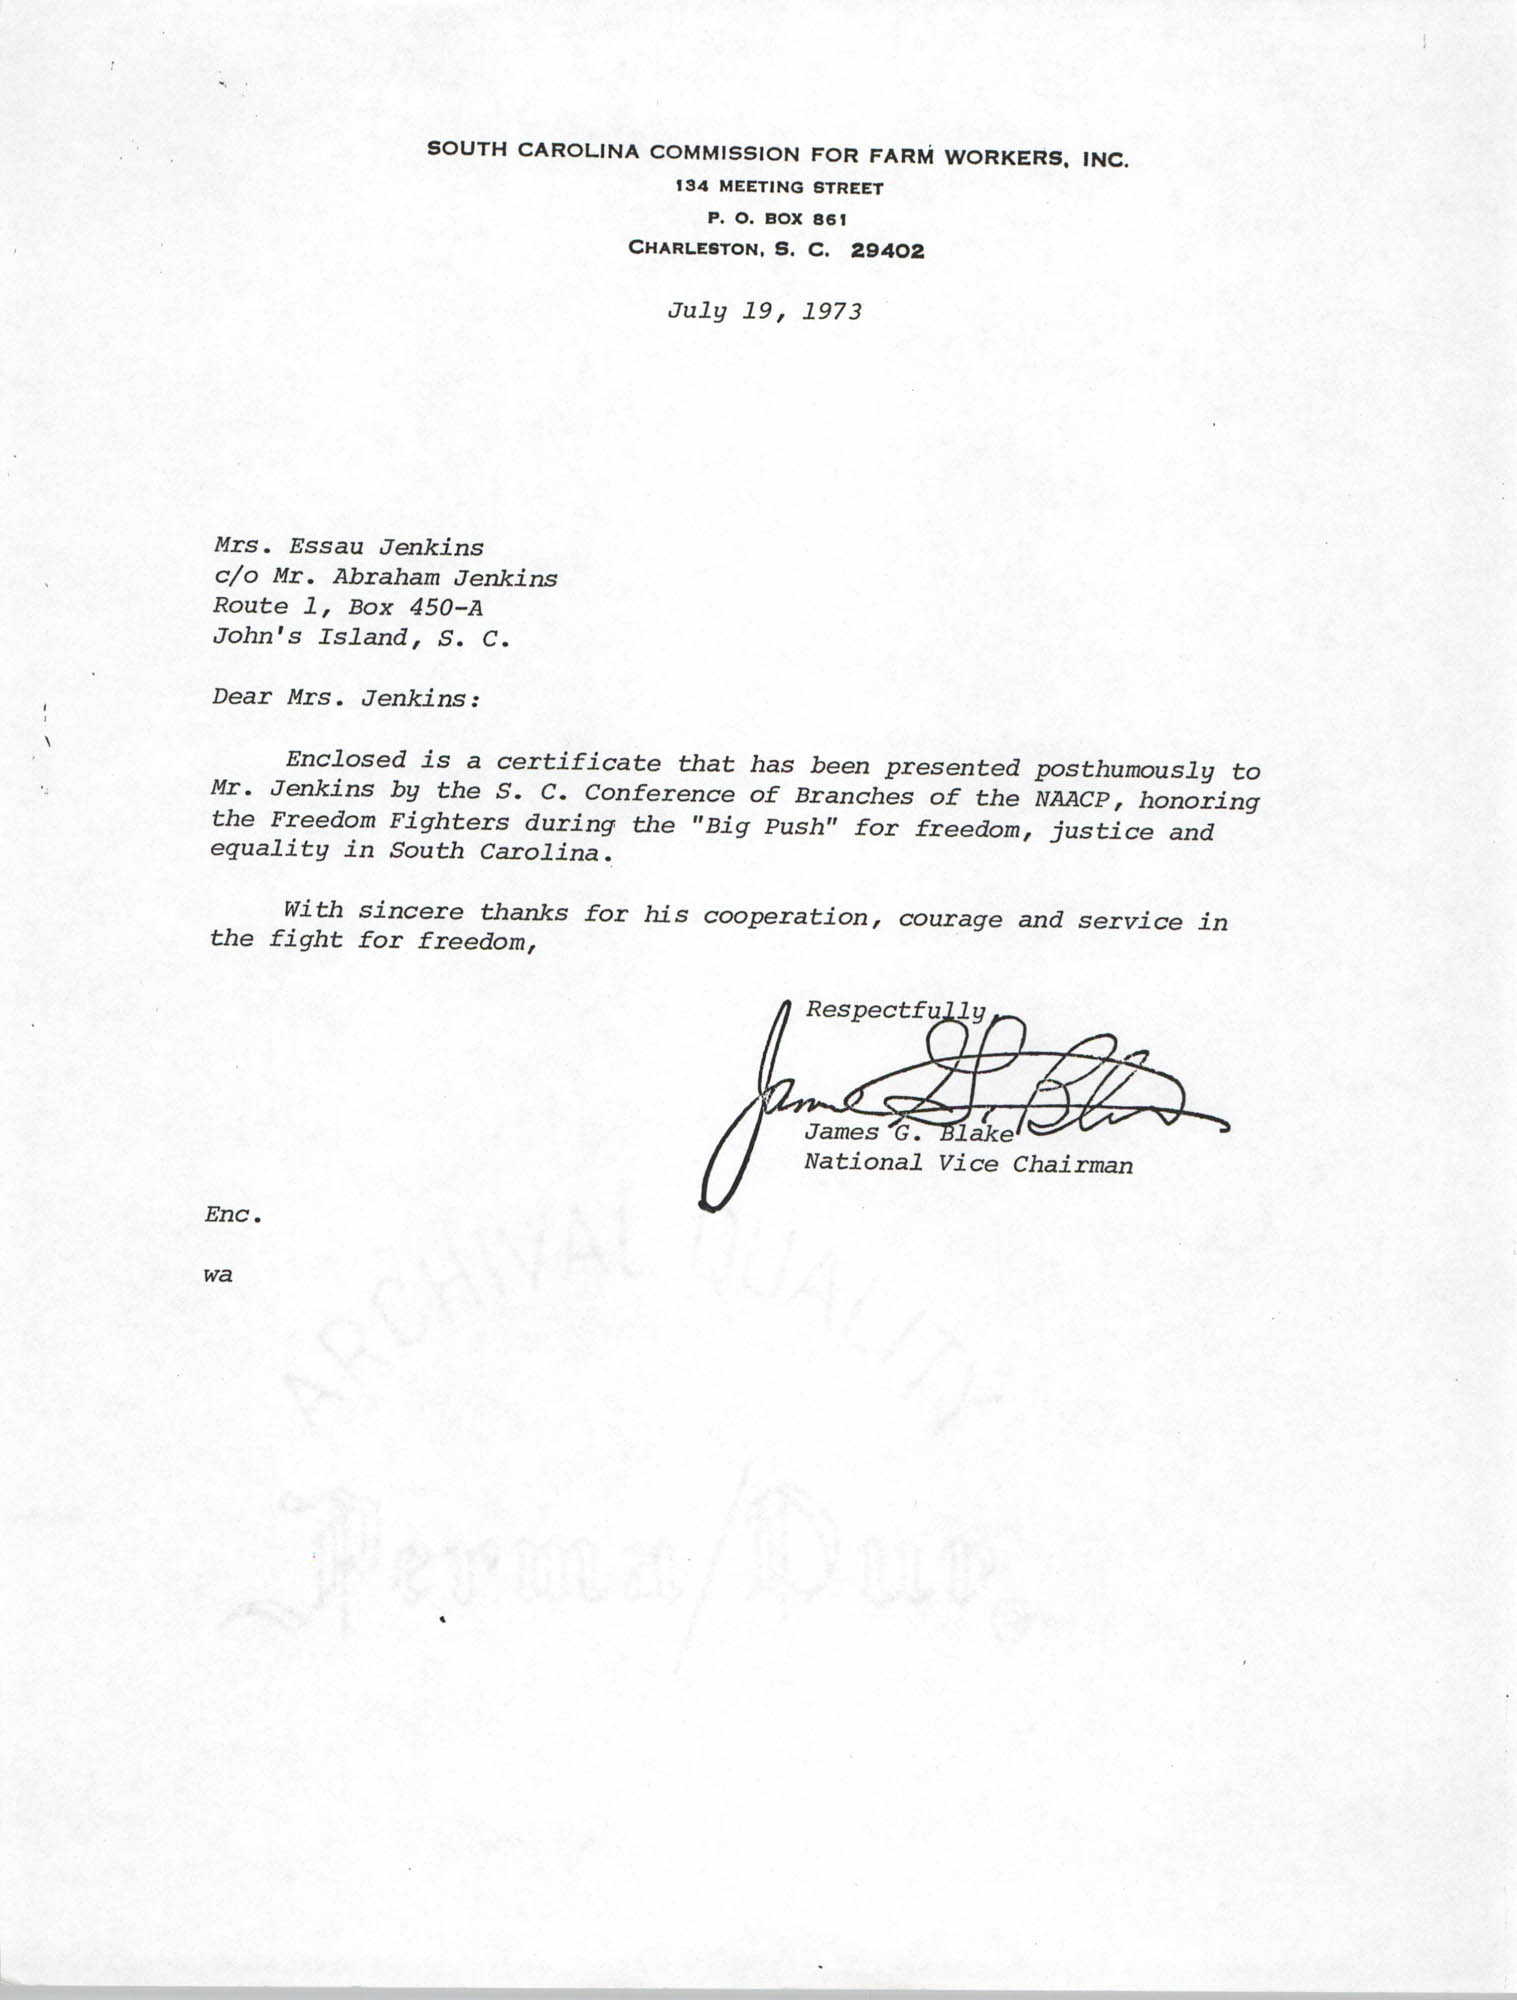 Letter from James G. Black to Esau Jenkins, July 19, 1973